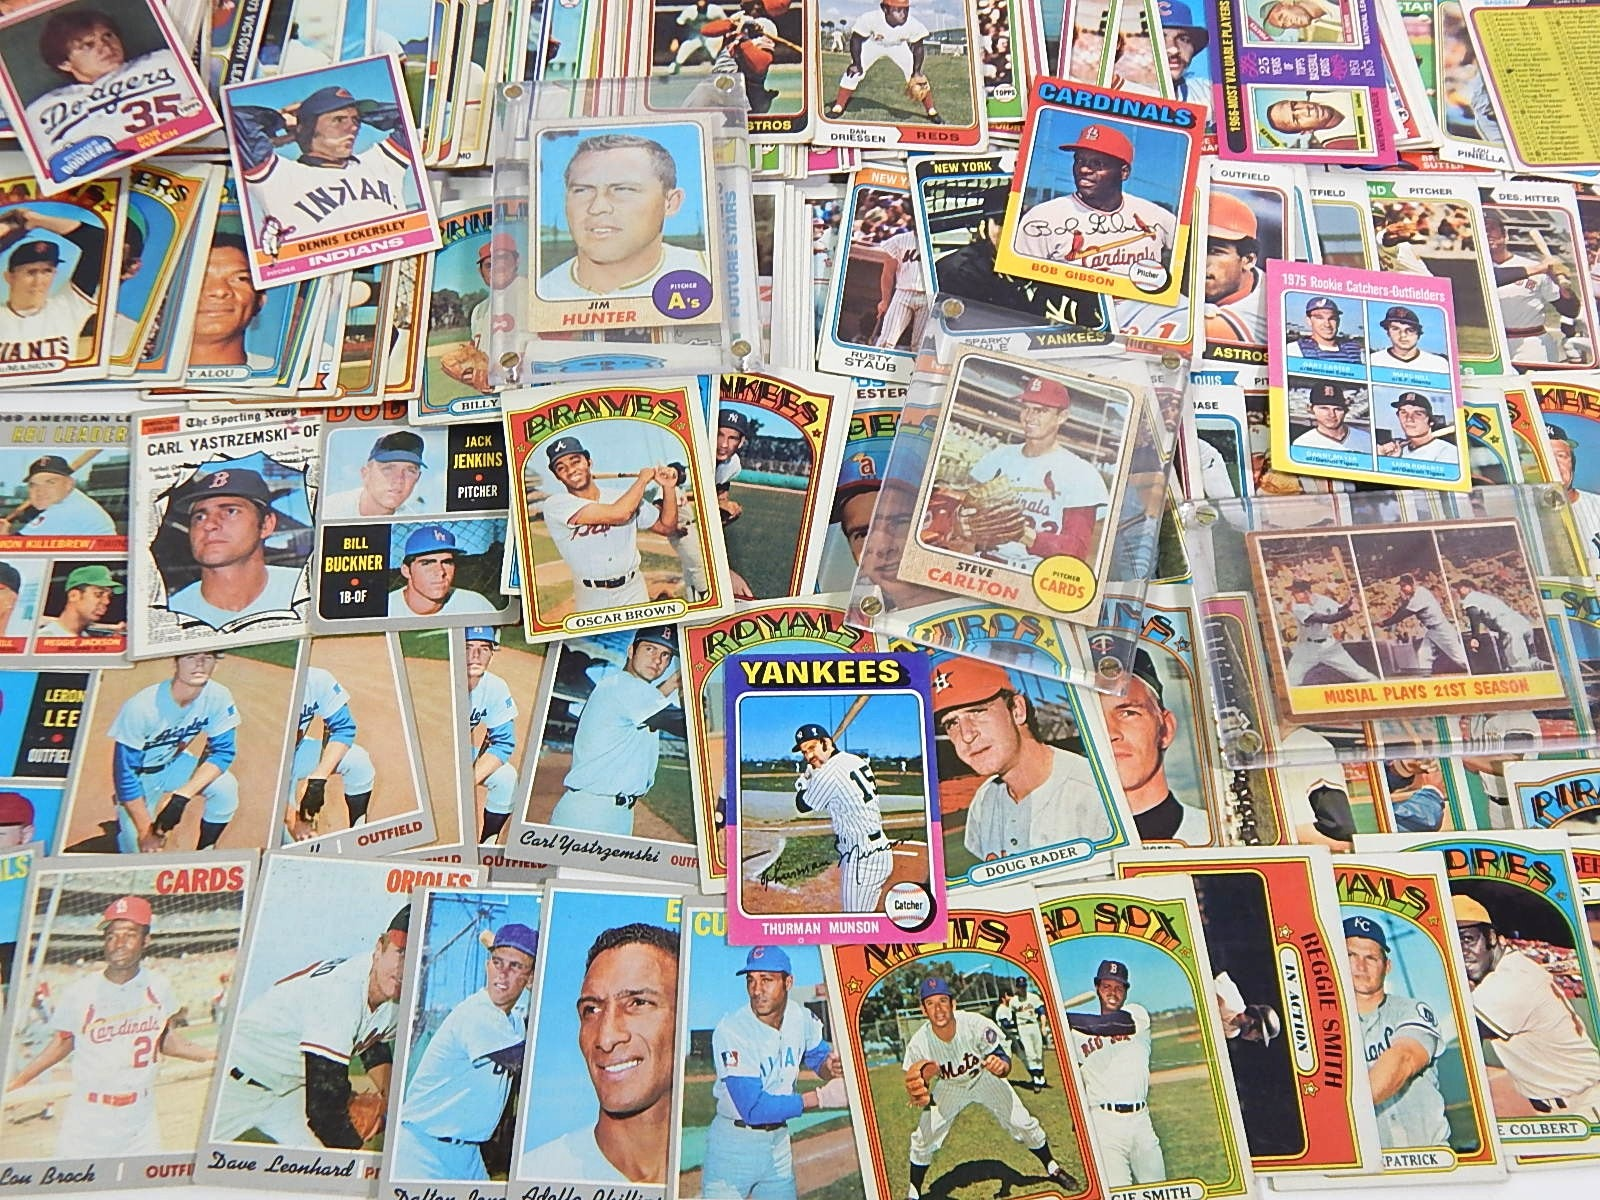 1960s to 1981 Topps Baseball Card Collection with Carlton, Eckersley Rookie